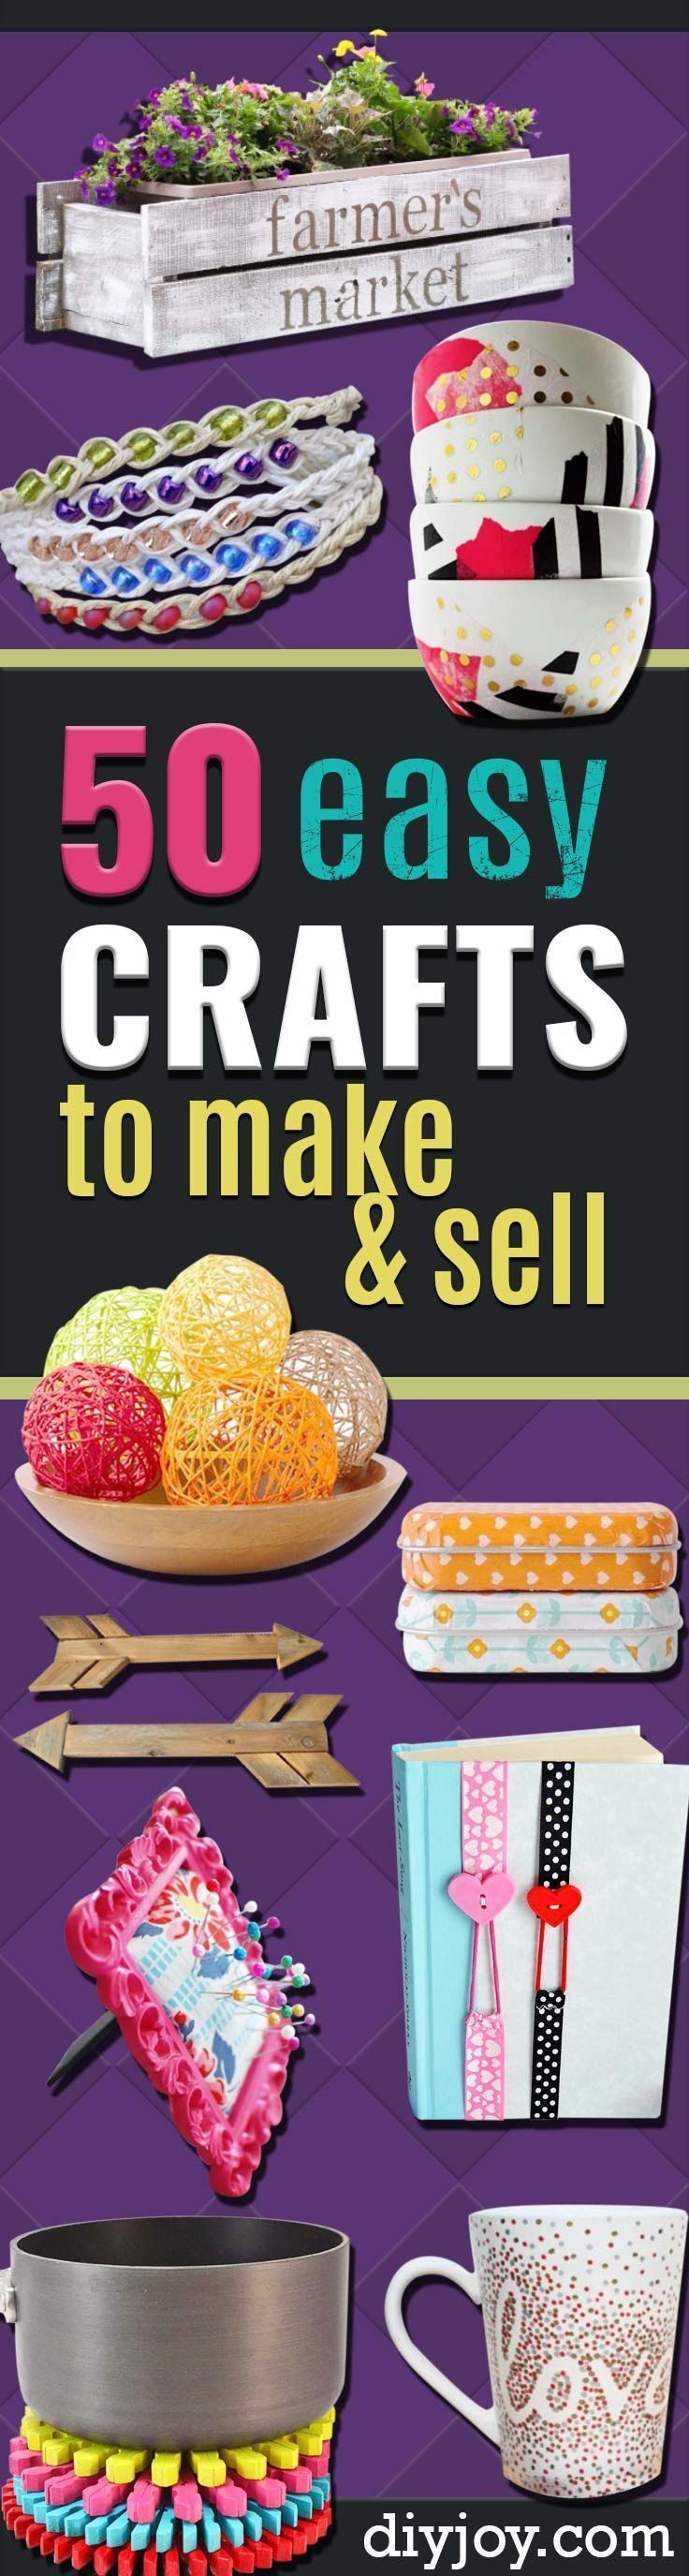 25 Best Easy Crafts To Sell Ideas On Pinterest Crafts